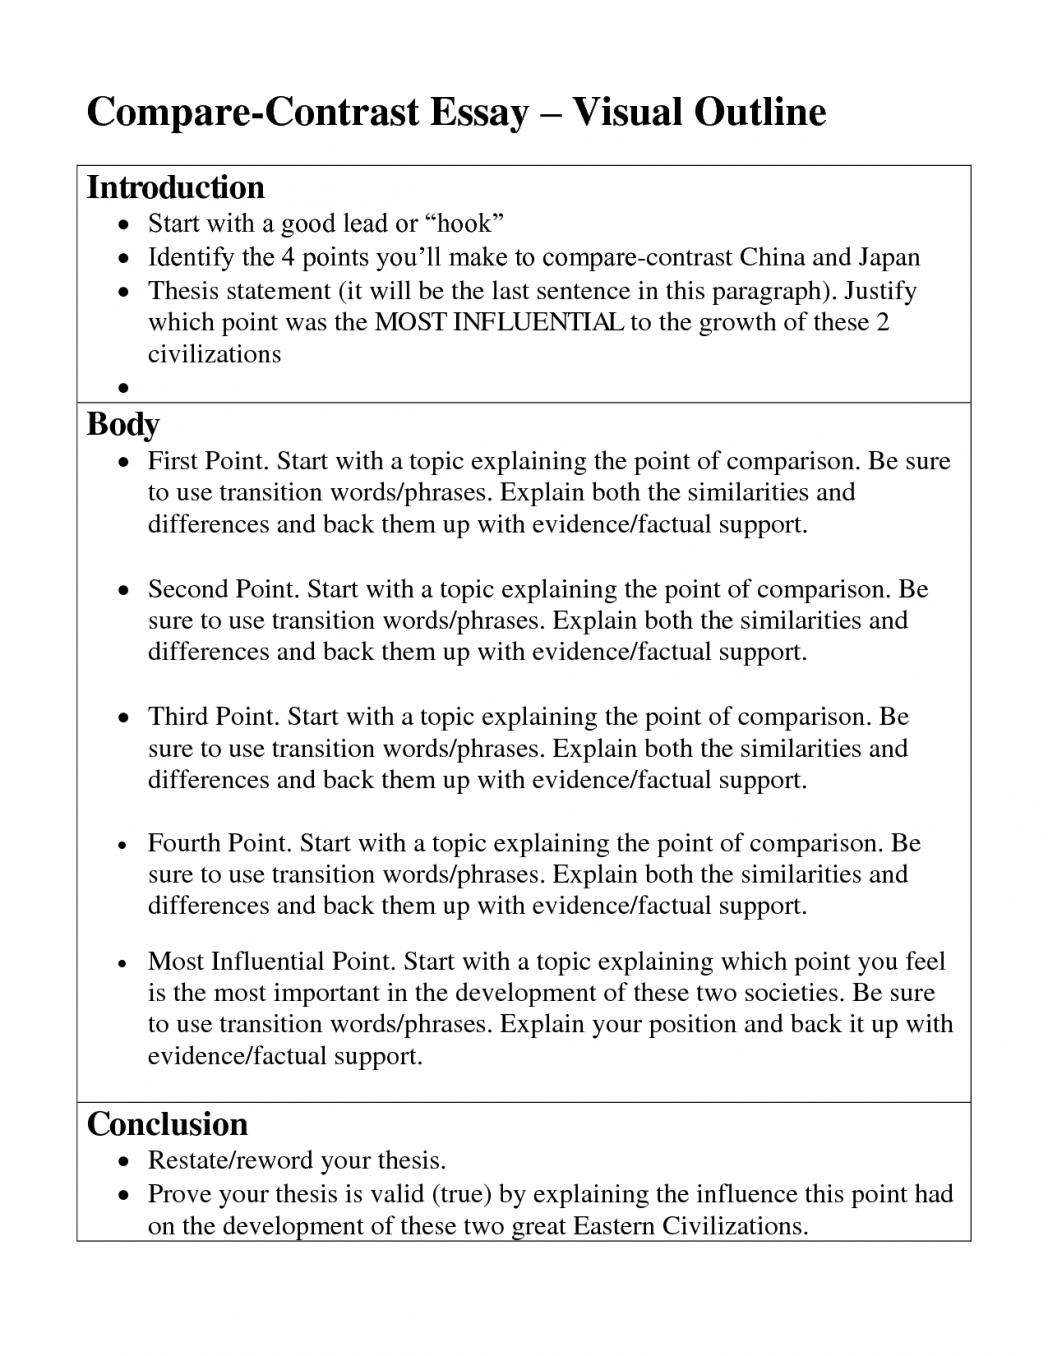 009 Compare And Contrast Essay Topics For High School Students English College Pdf Research Paper 1048x1356 Fantastic Sports Prompts 5th Grade 4th Full